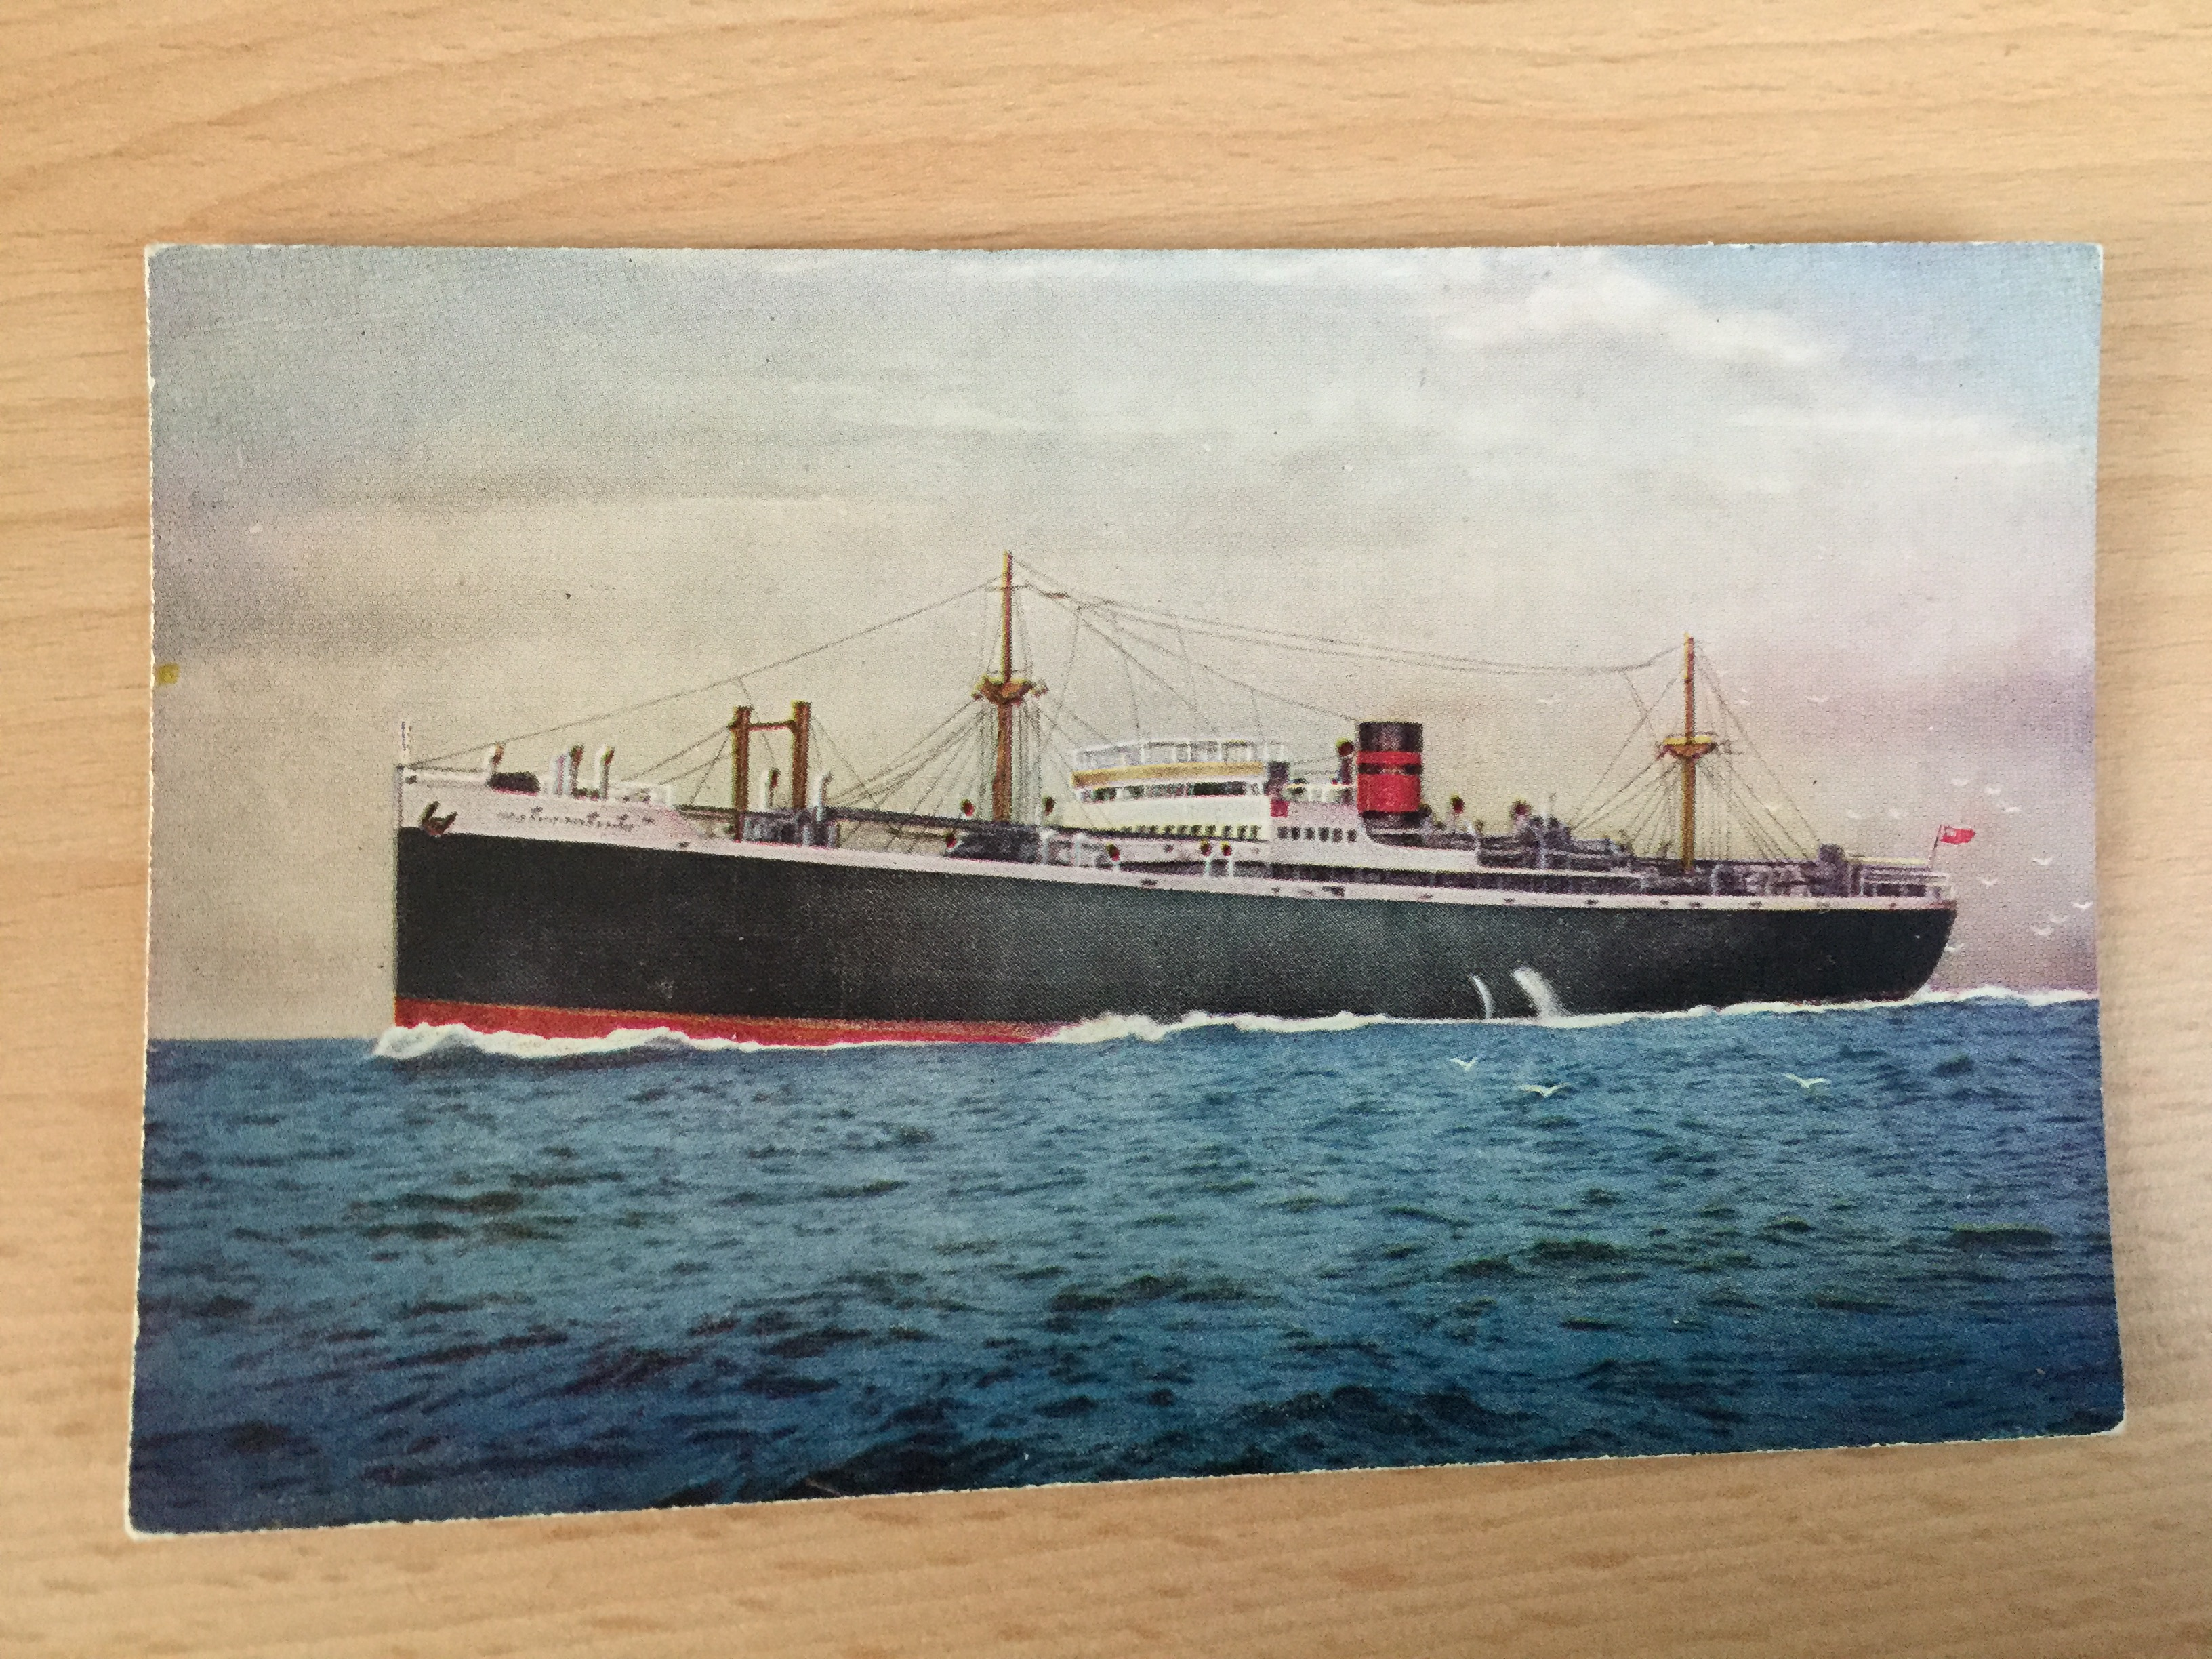 COLOUR POSTCARD OF THE FURNESS LINE VESSEL THE PACIFIC GROVE